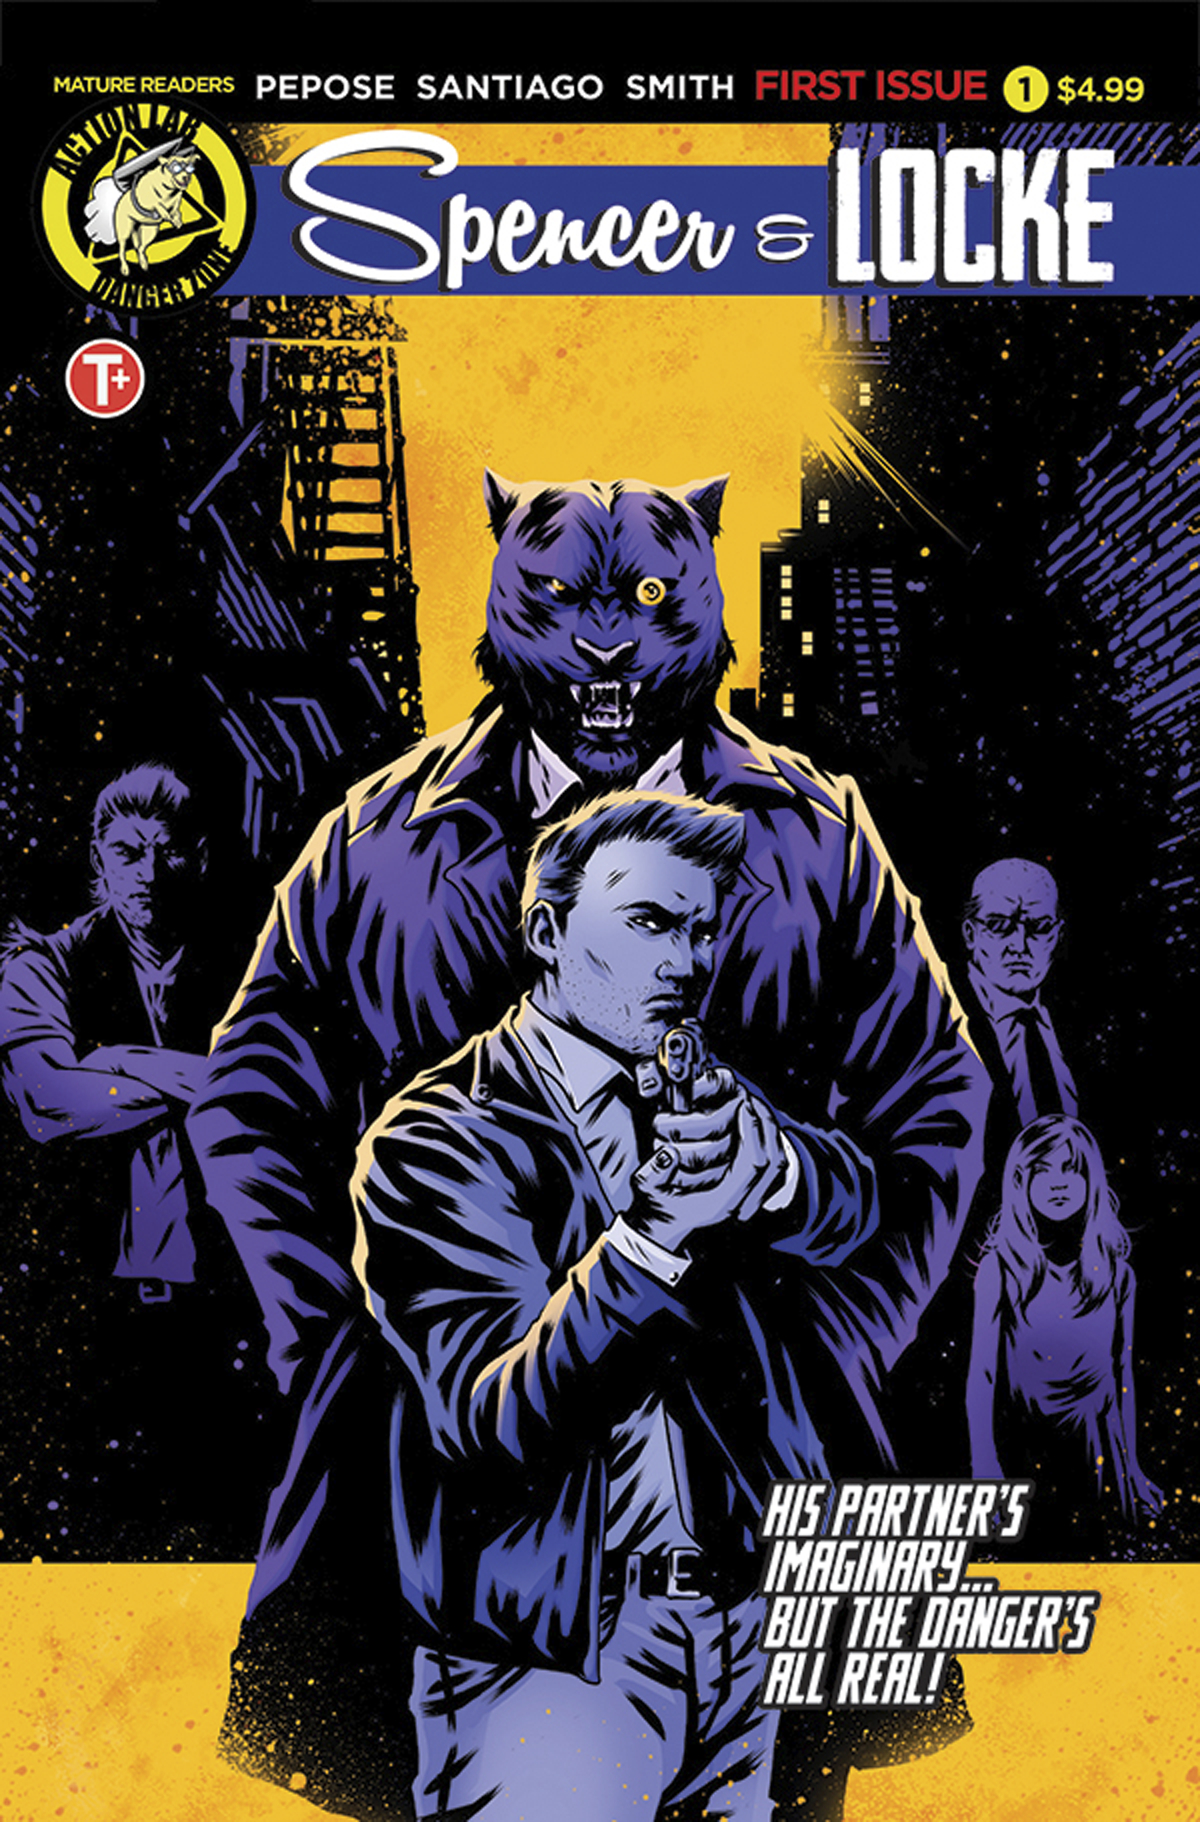 Spencer & Locke #1 Review